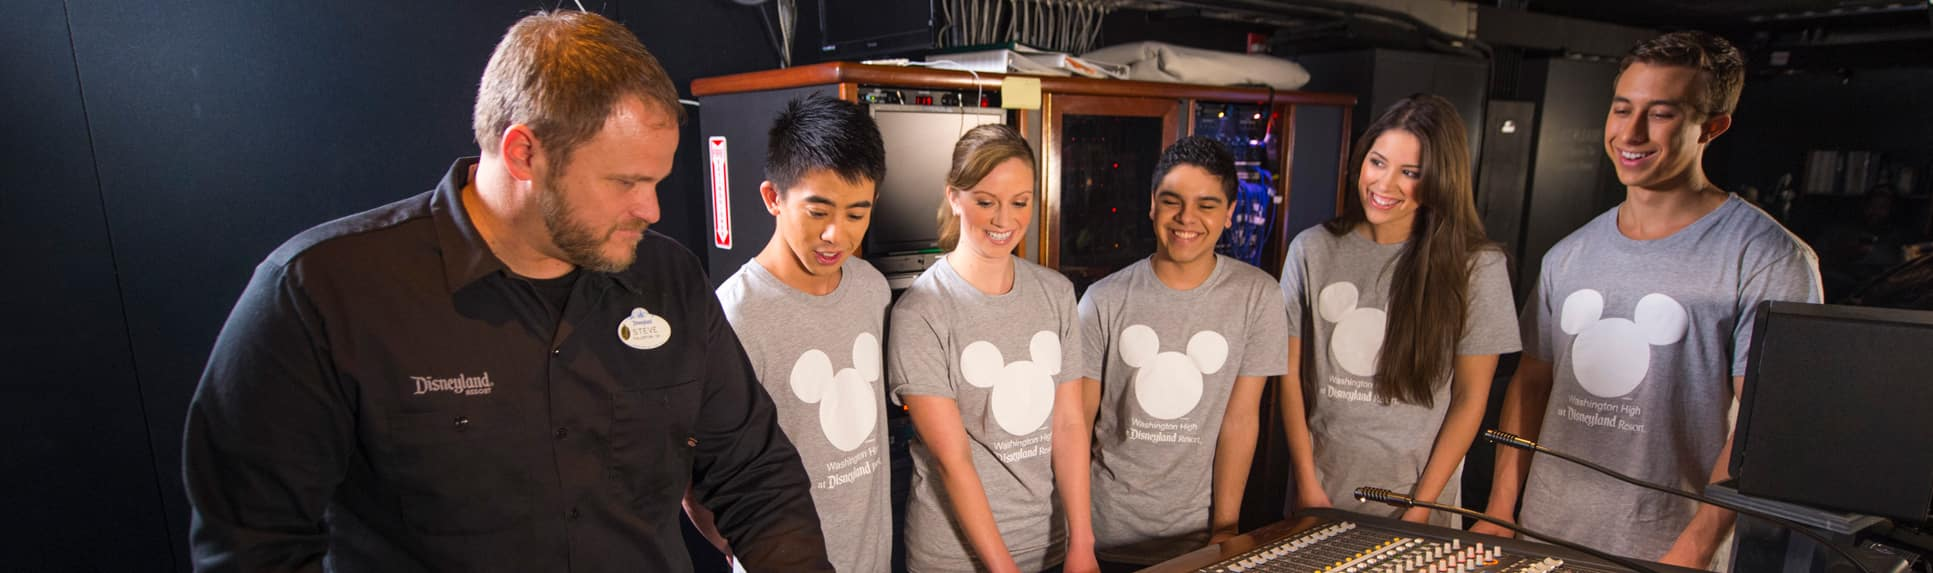 A Cast Member showing a group of teenagers around an audio control booth